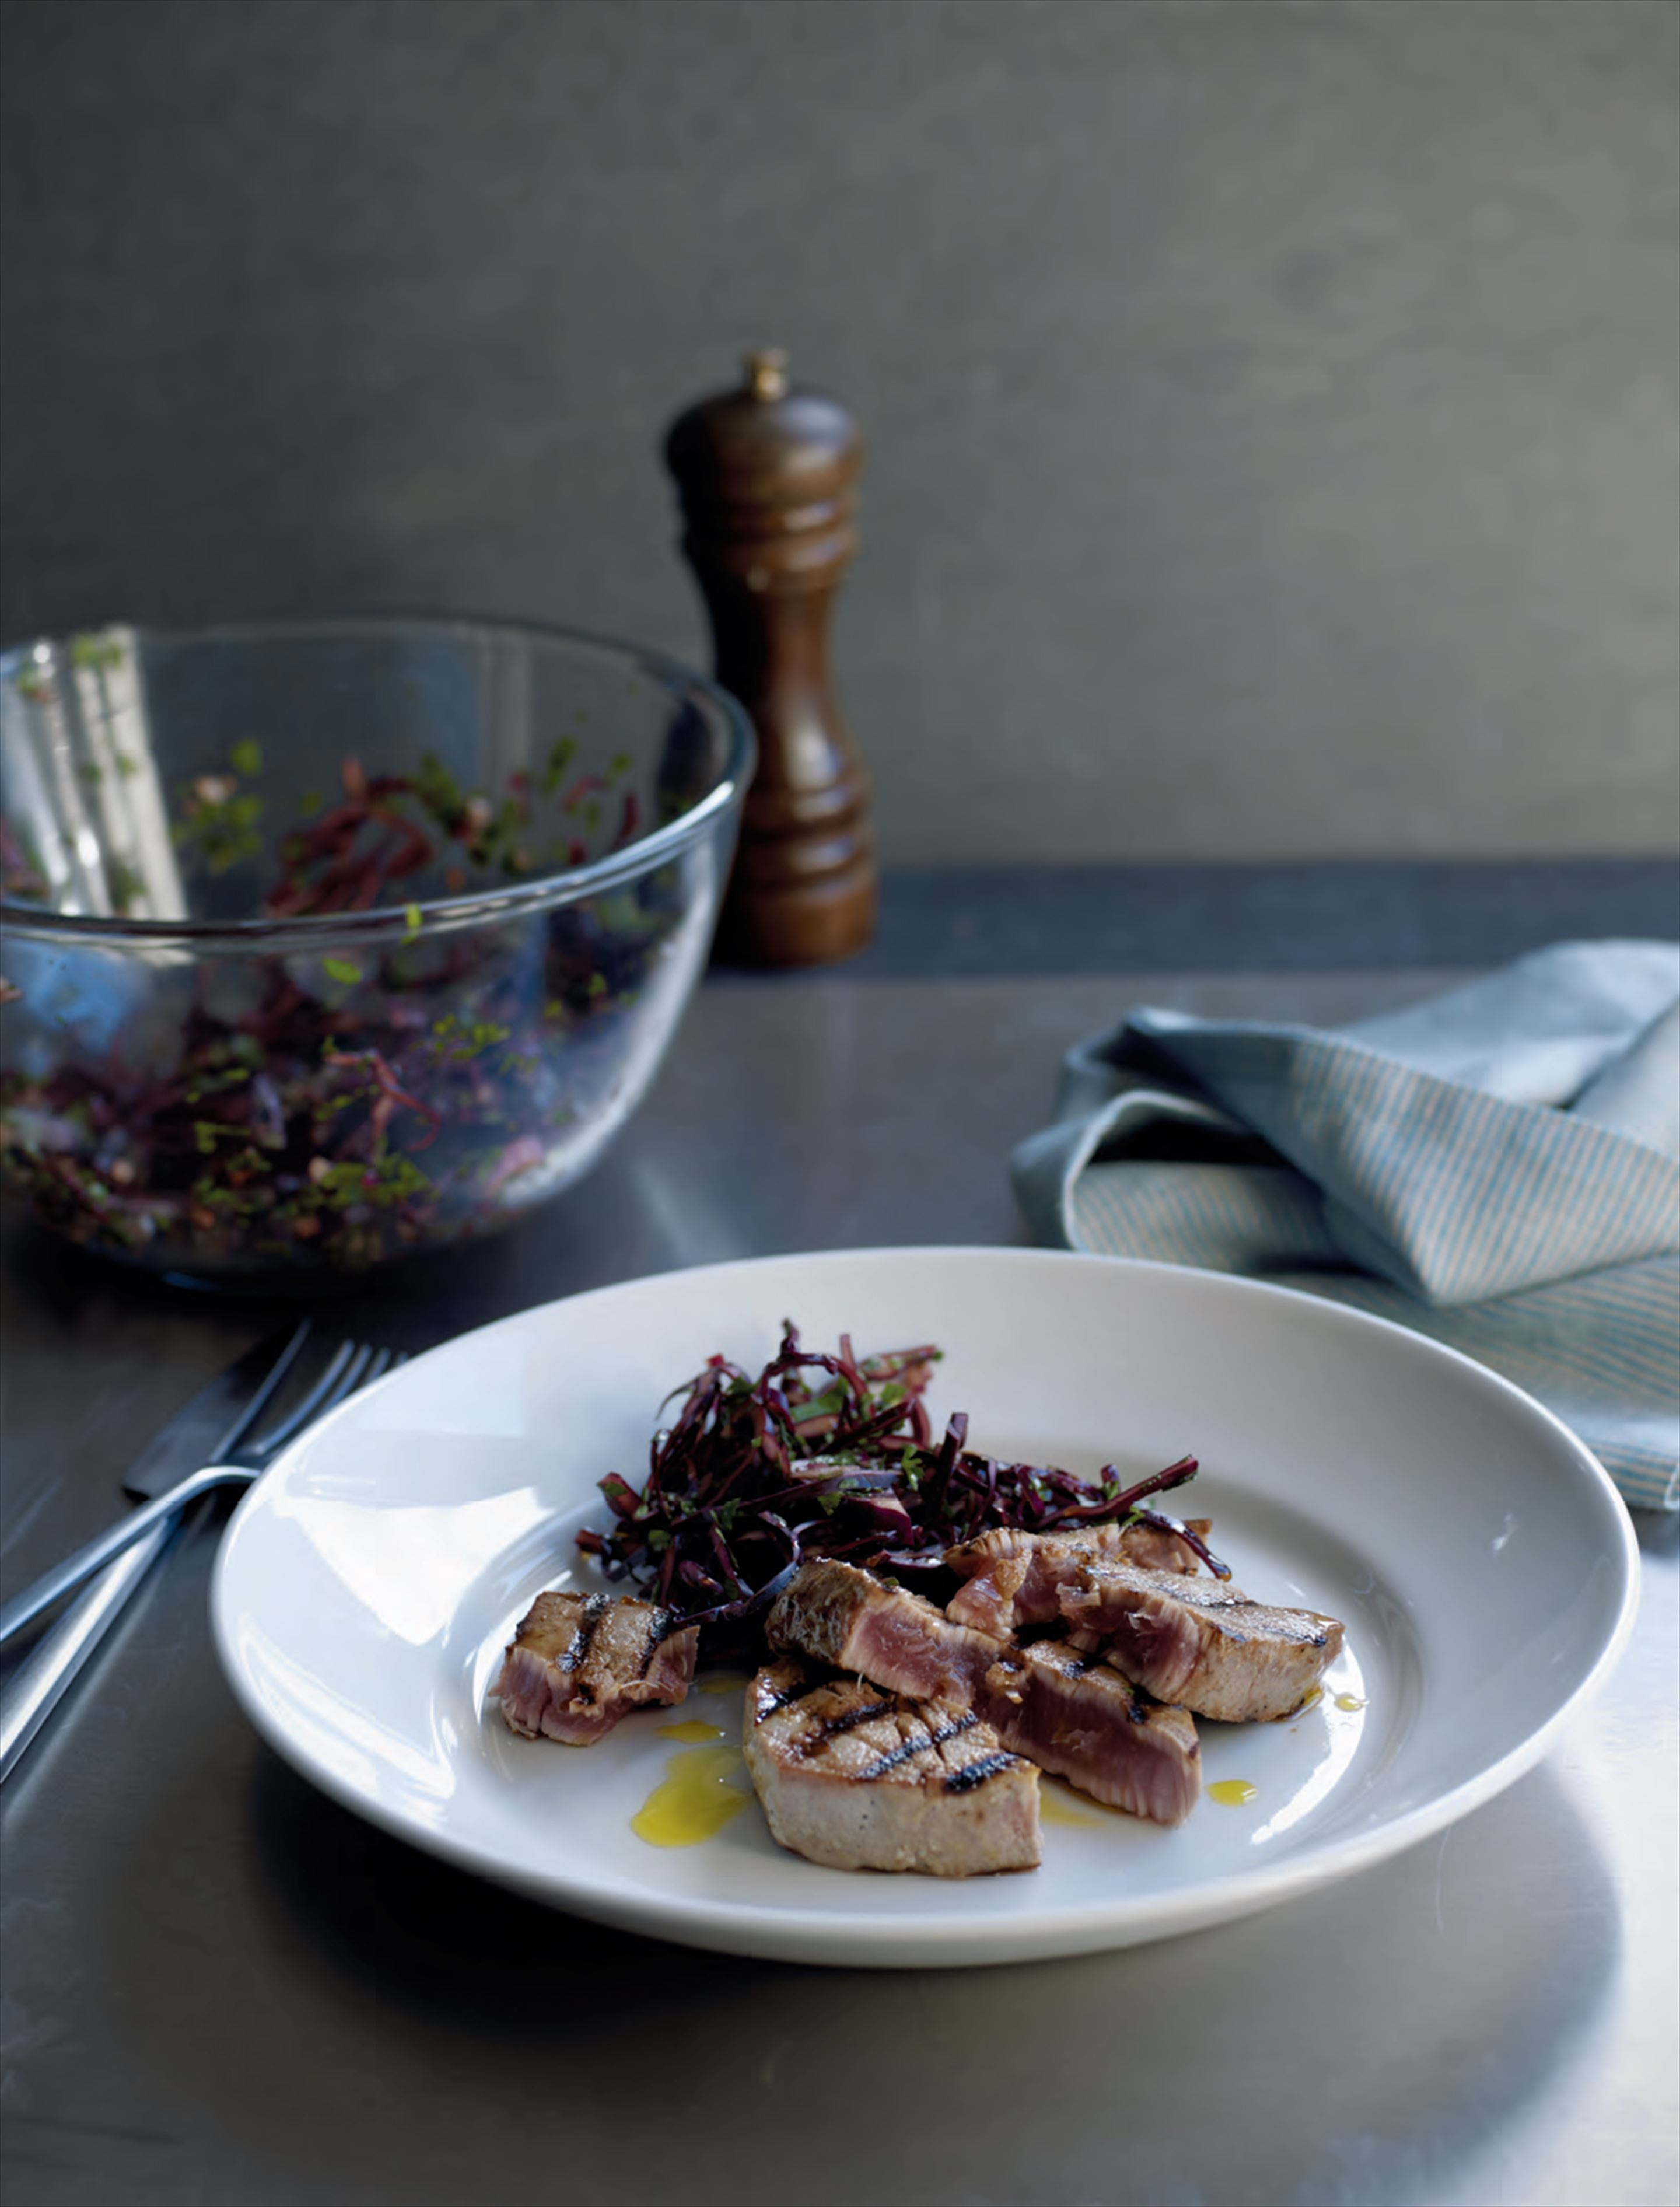 Ginger & mustard glazed tuna with red cabbage slaw